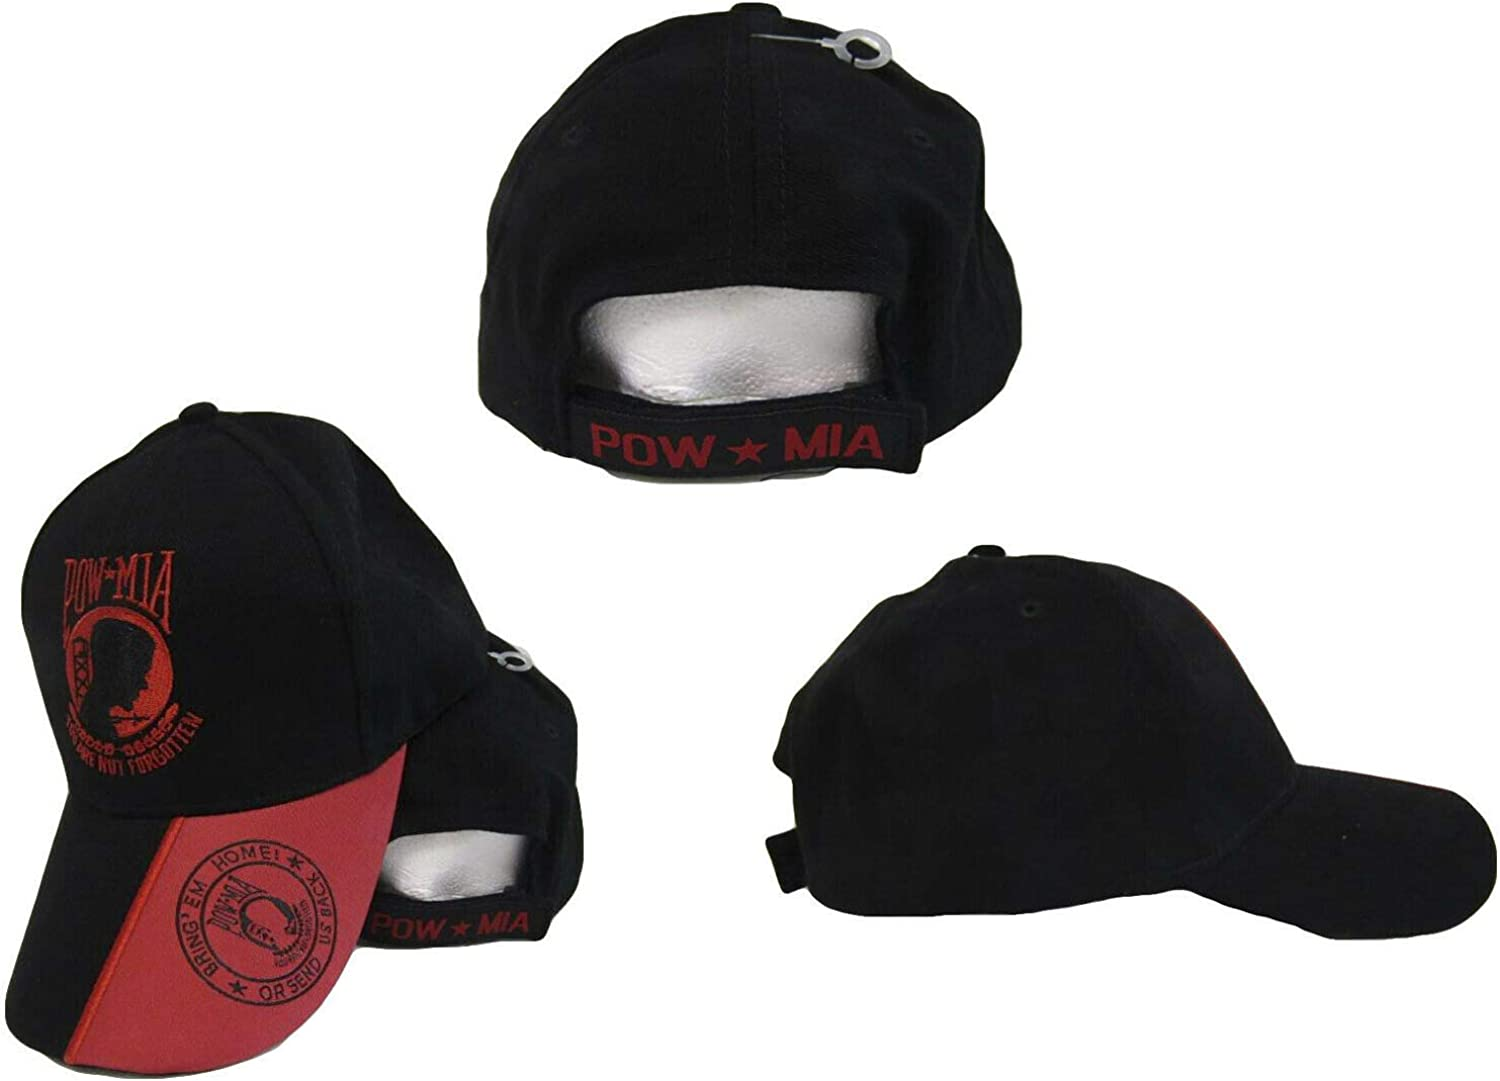 Trade Winds POW MIA Red Black Bring Them Home or Send Us Back Embroidered Cap Hat